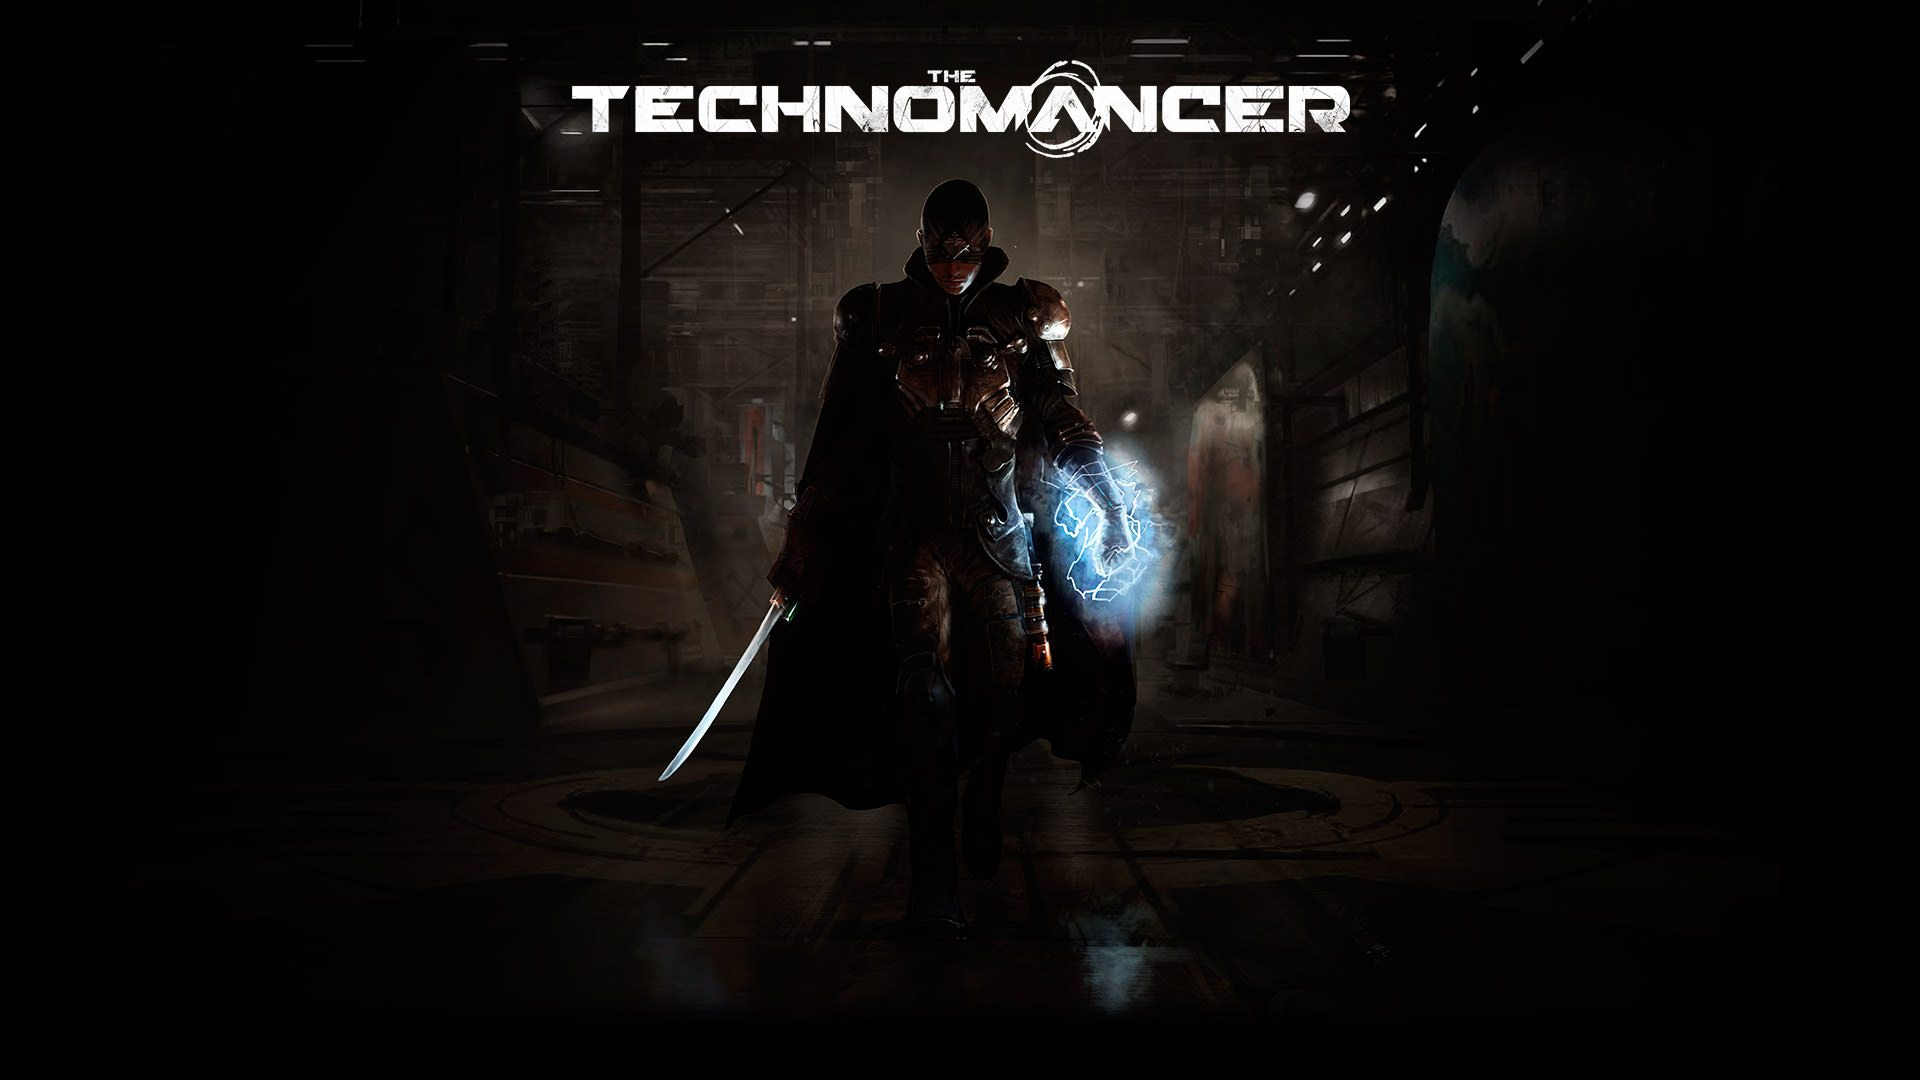 The Technomancer Post-Apocalyptic ARPG Announced